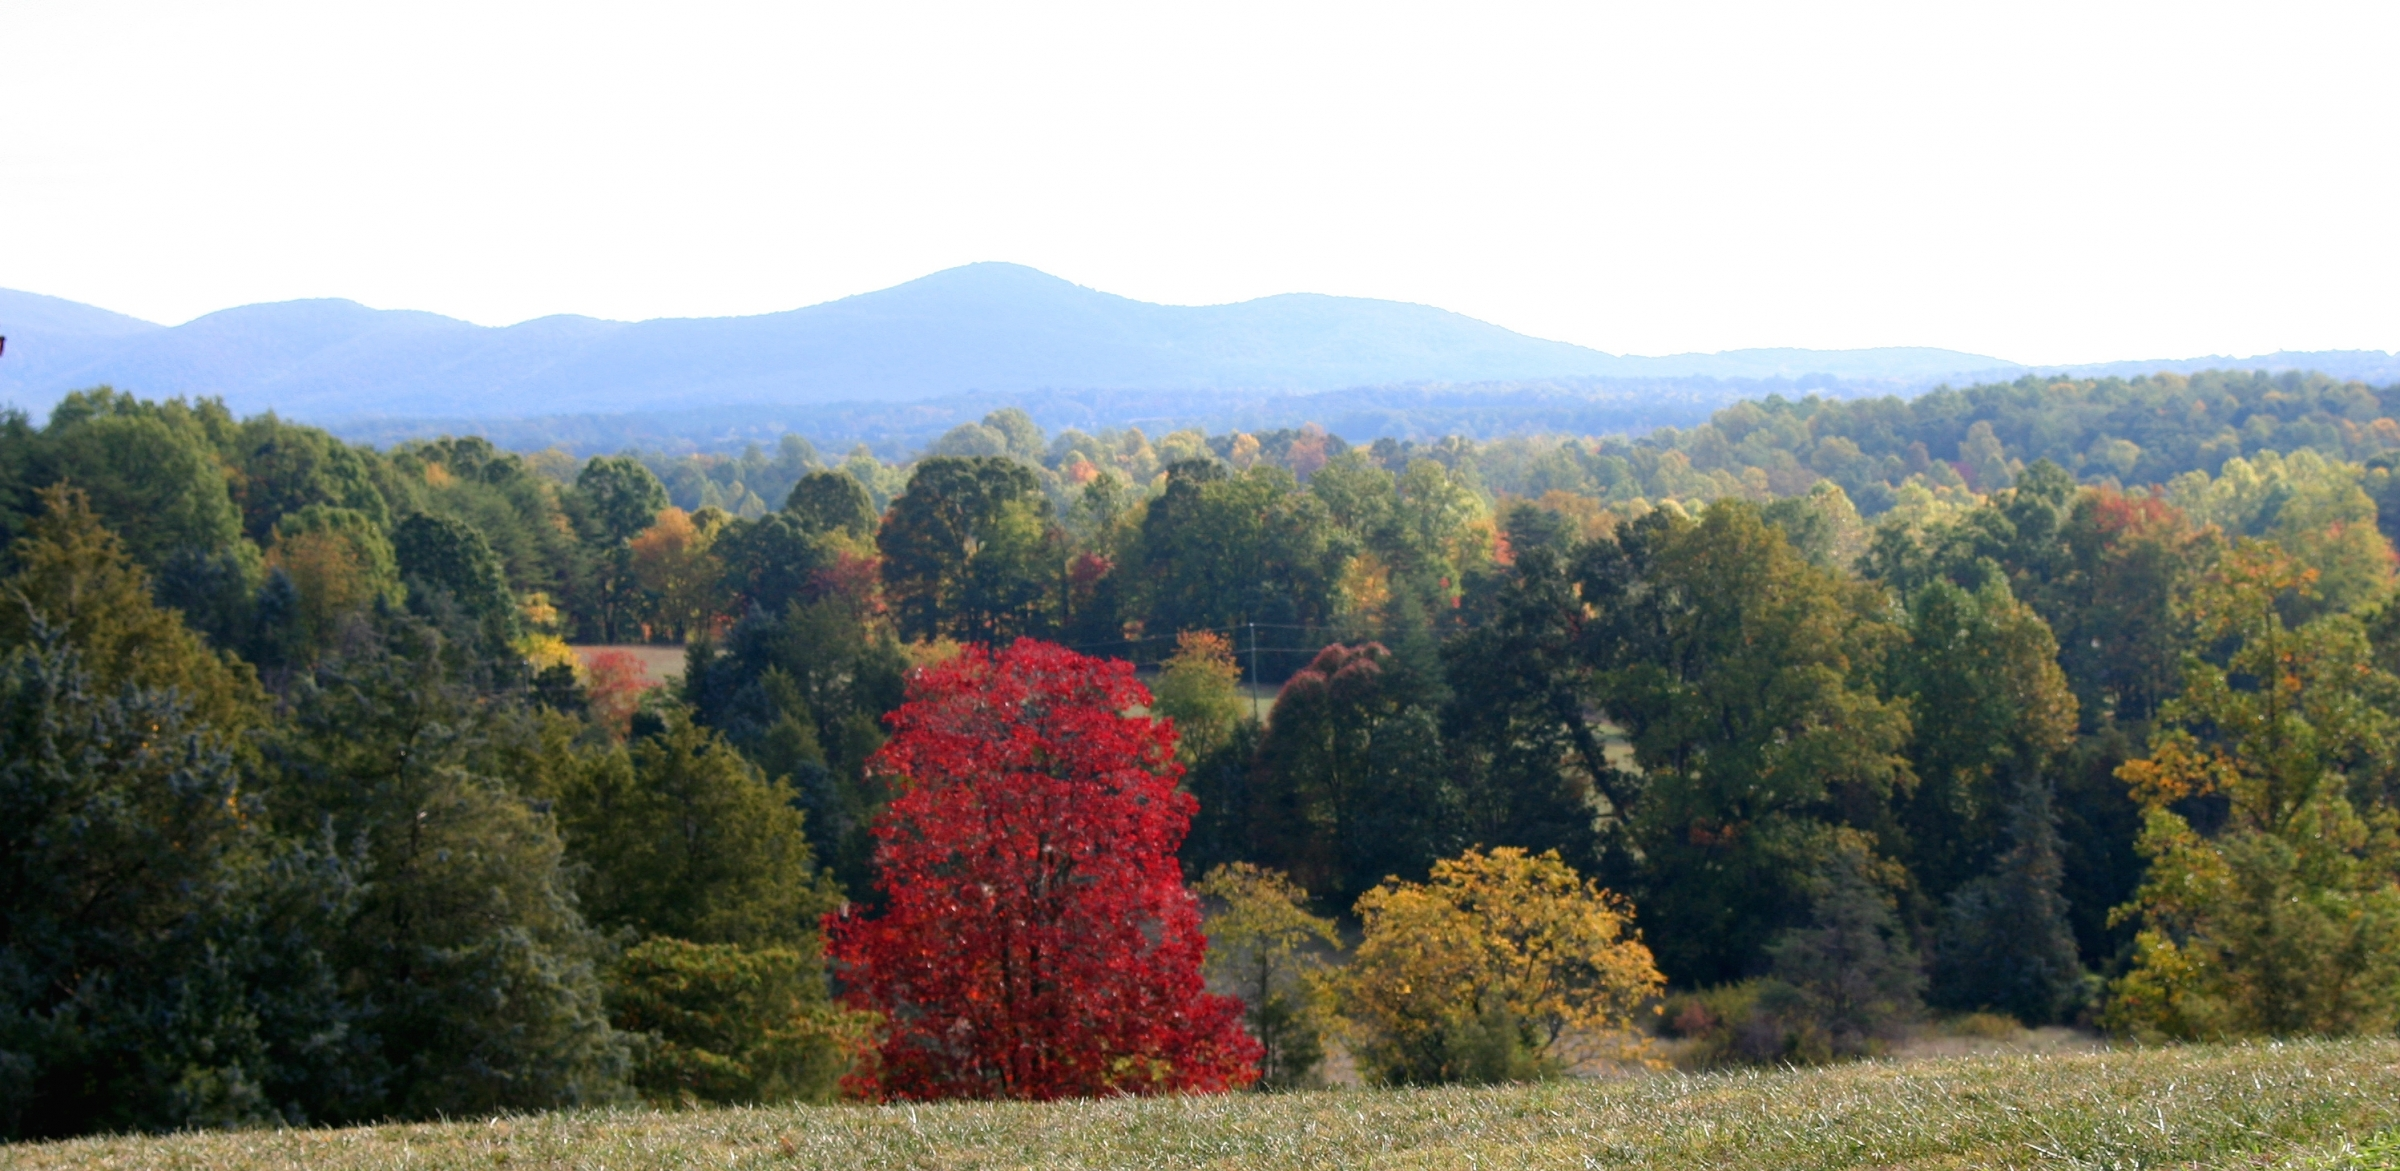 a photo taken to honor gorgeous diversity - here a lone maple sparks brilliant Vermilion in the morning sunshine after the first frost of autumn at Smith Mountain Lake in Franklin County Virginia - taken by builder Timber Ridge Craftsmen Inc.